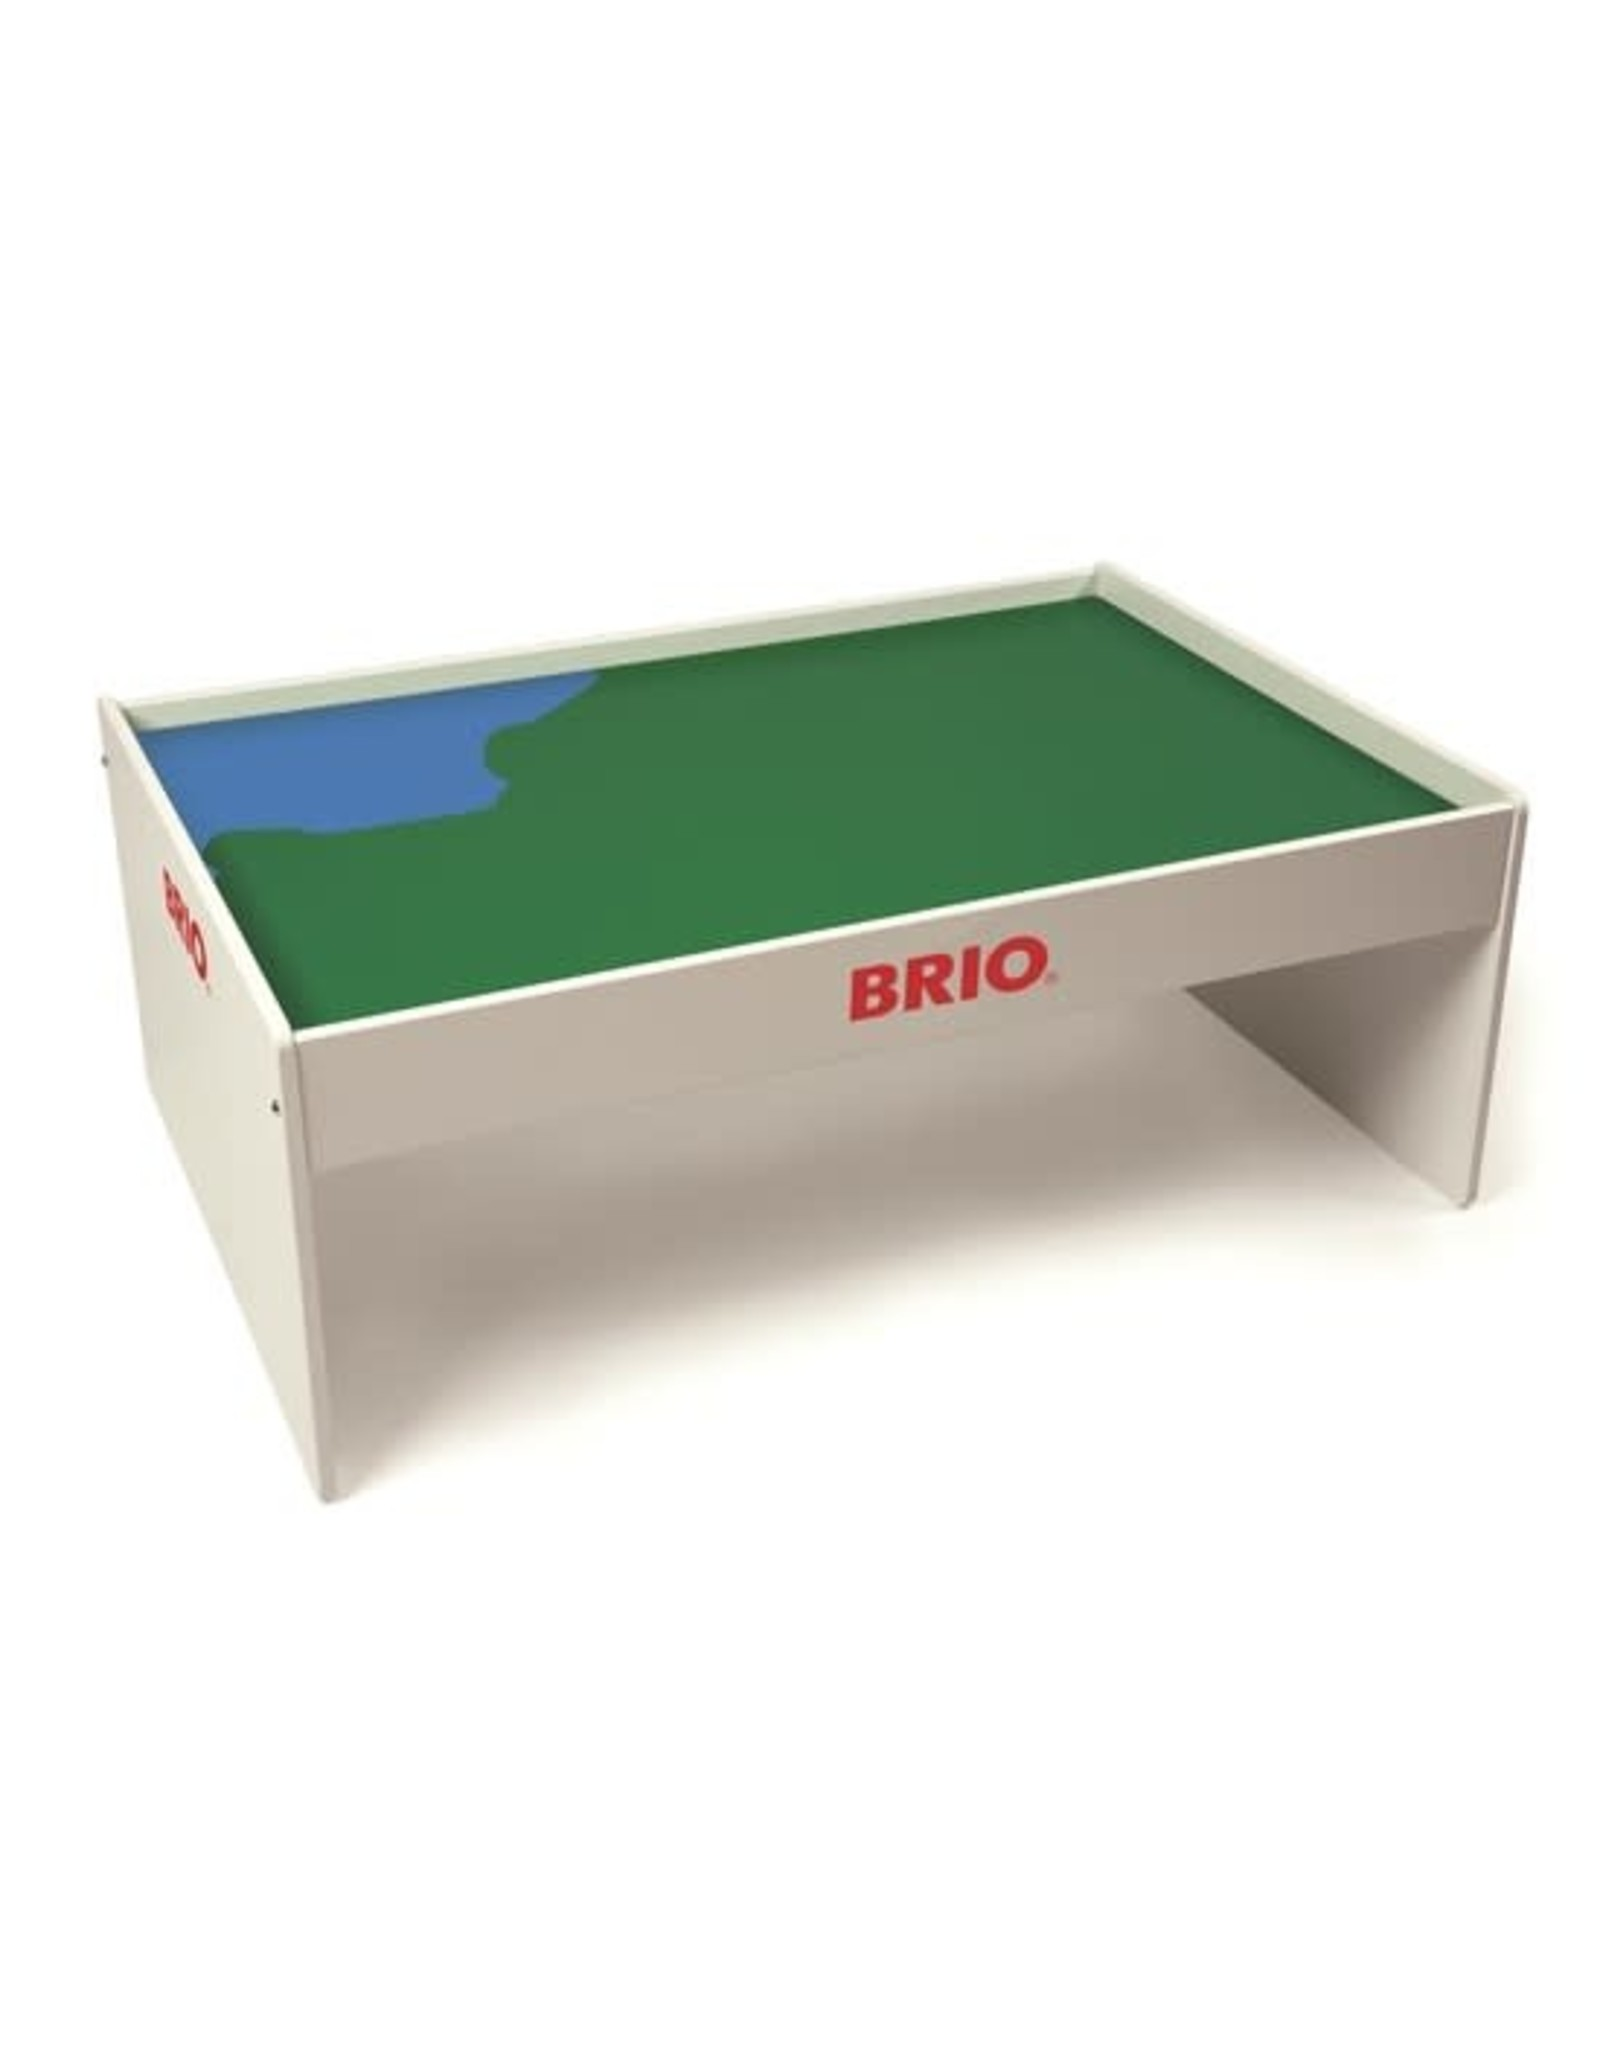 Brio Brio Play Table